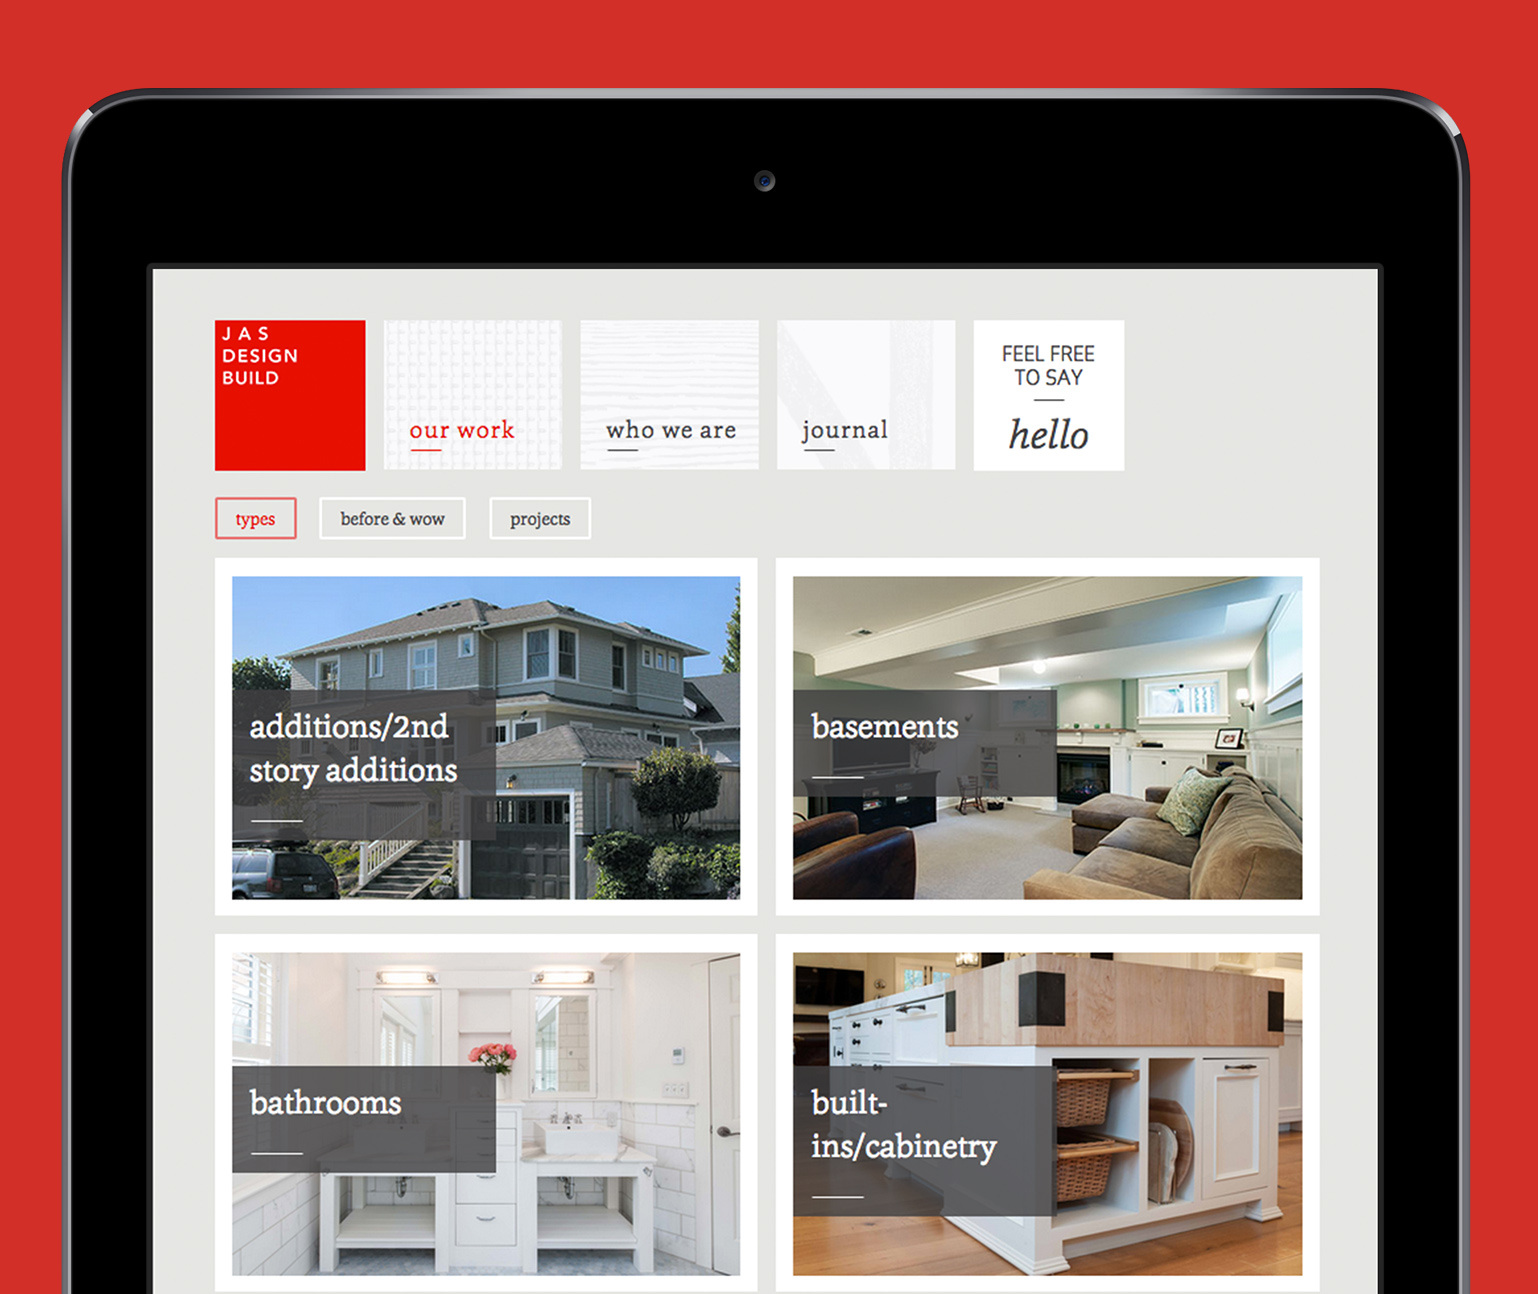 JAS Website shown in a tablet over a red background